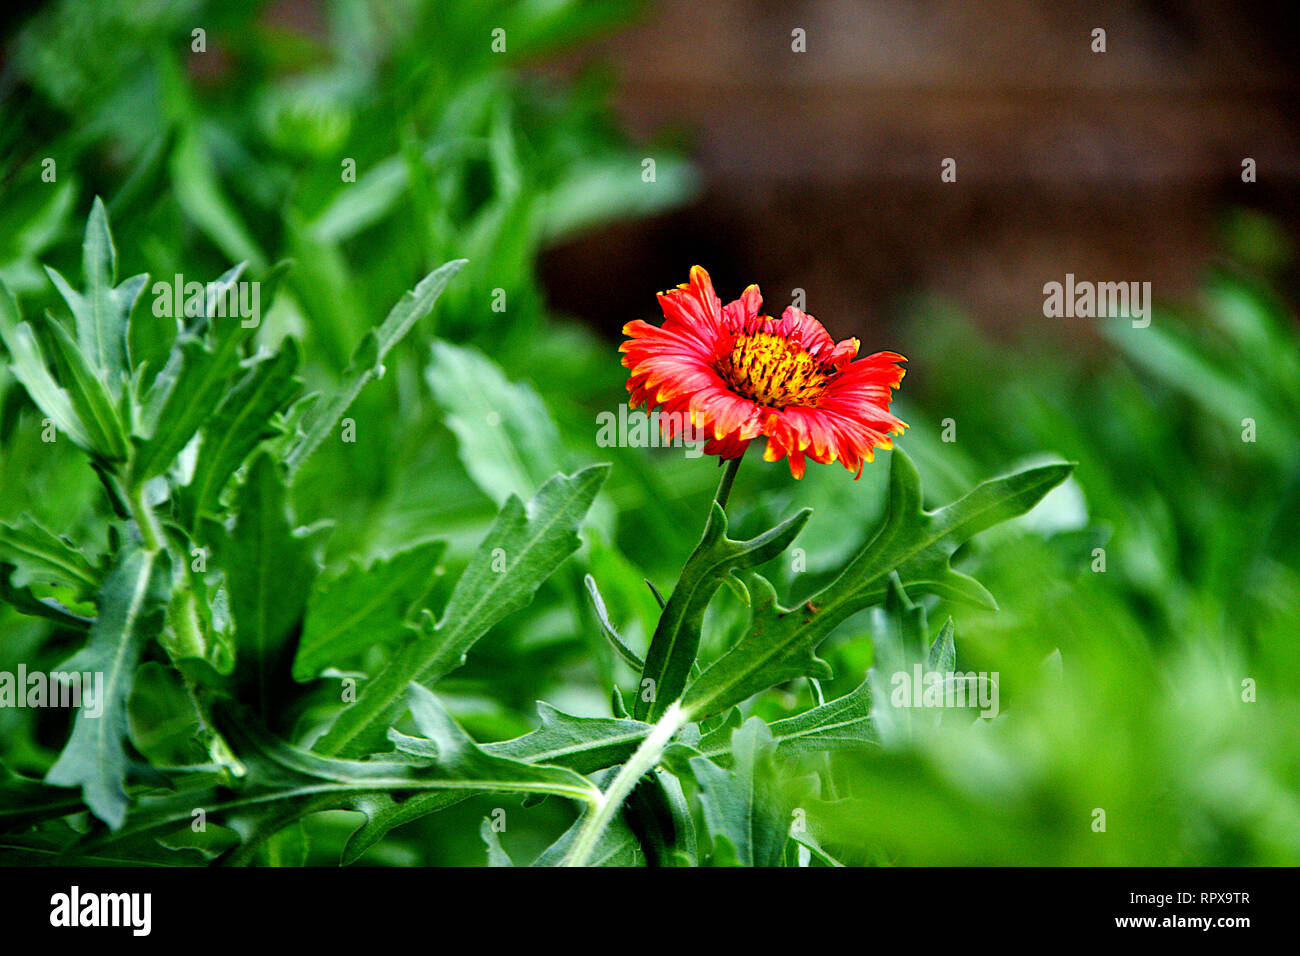 Lone red flower in the middle of green leaves with blurred background - Stock Image